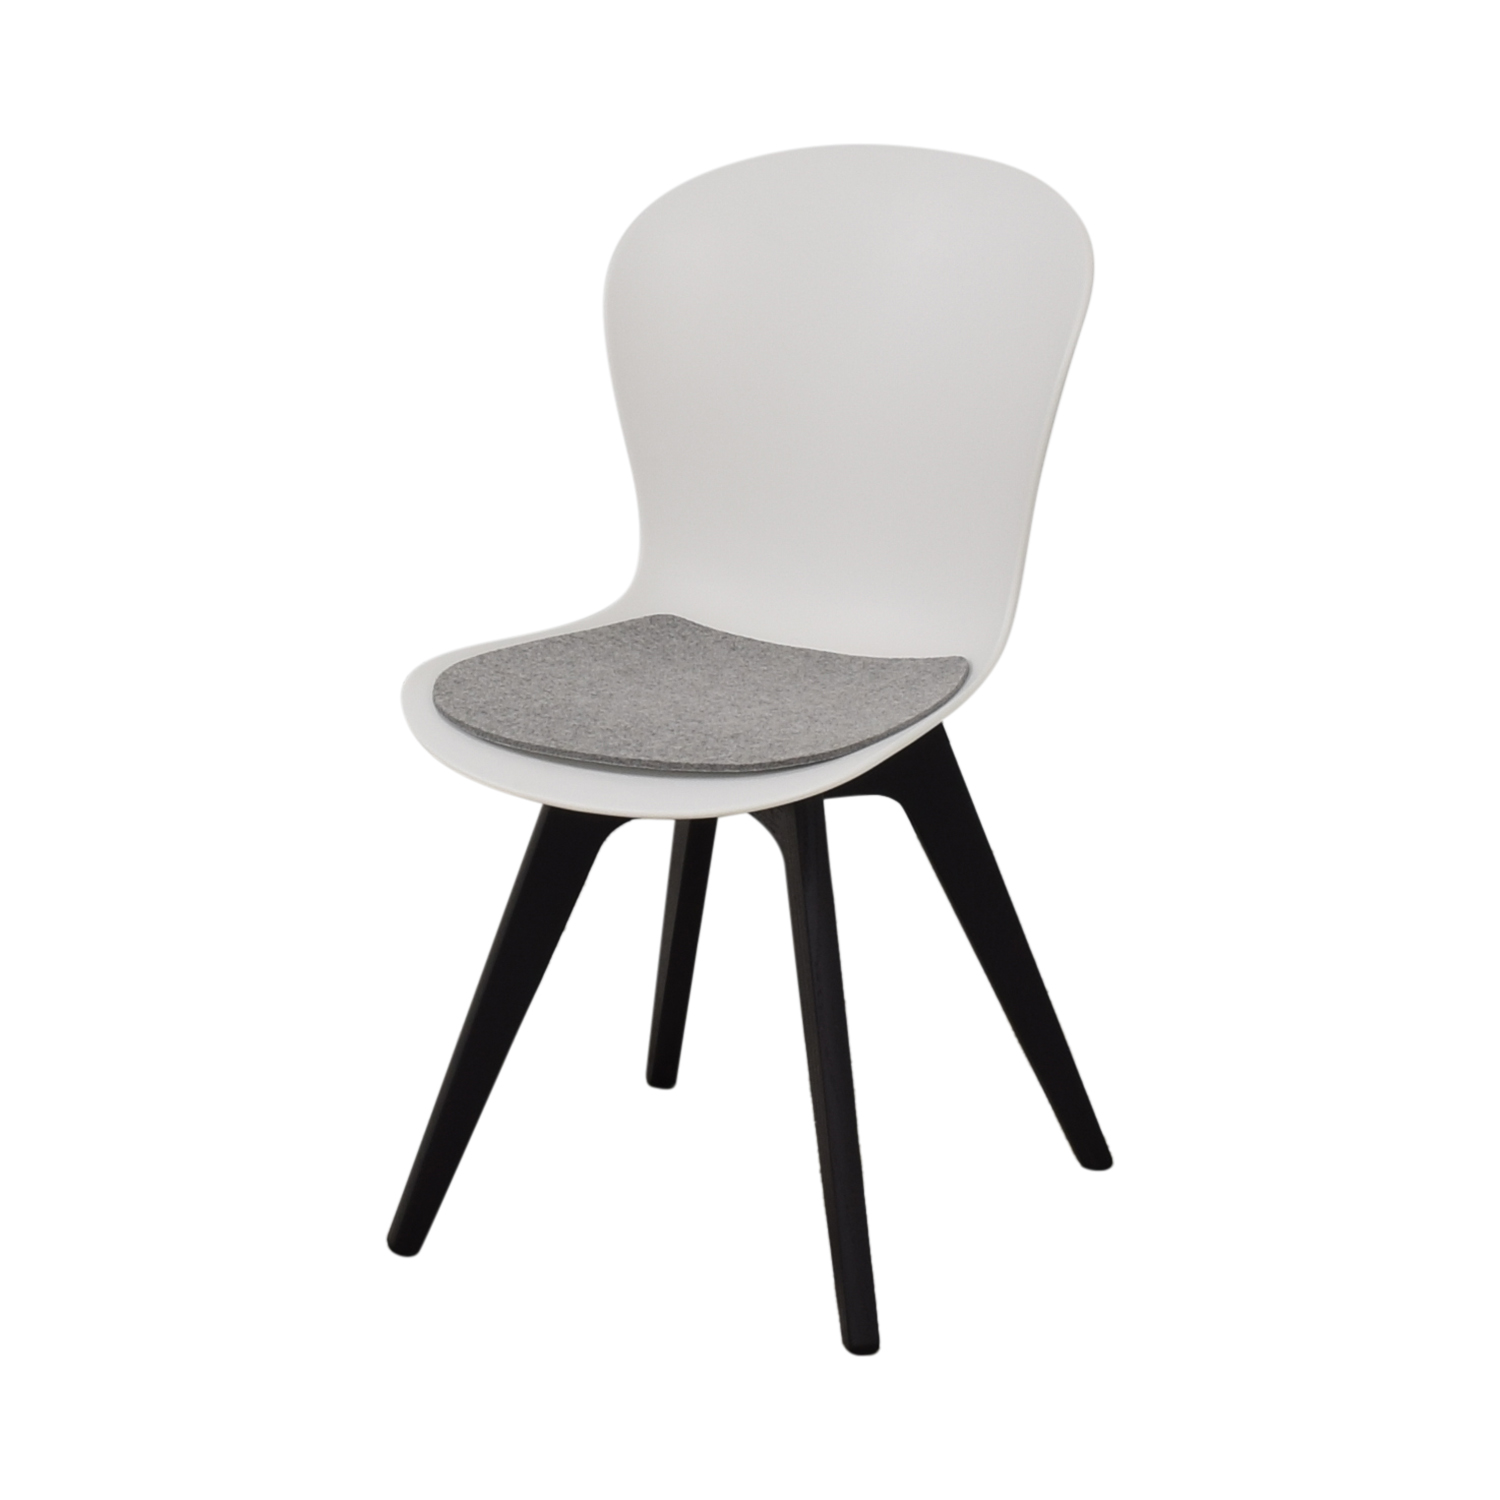 BoConcept BoConcept Adelaide Chairs with Morgan Seat Cushions nj